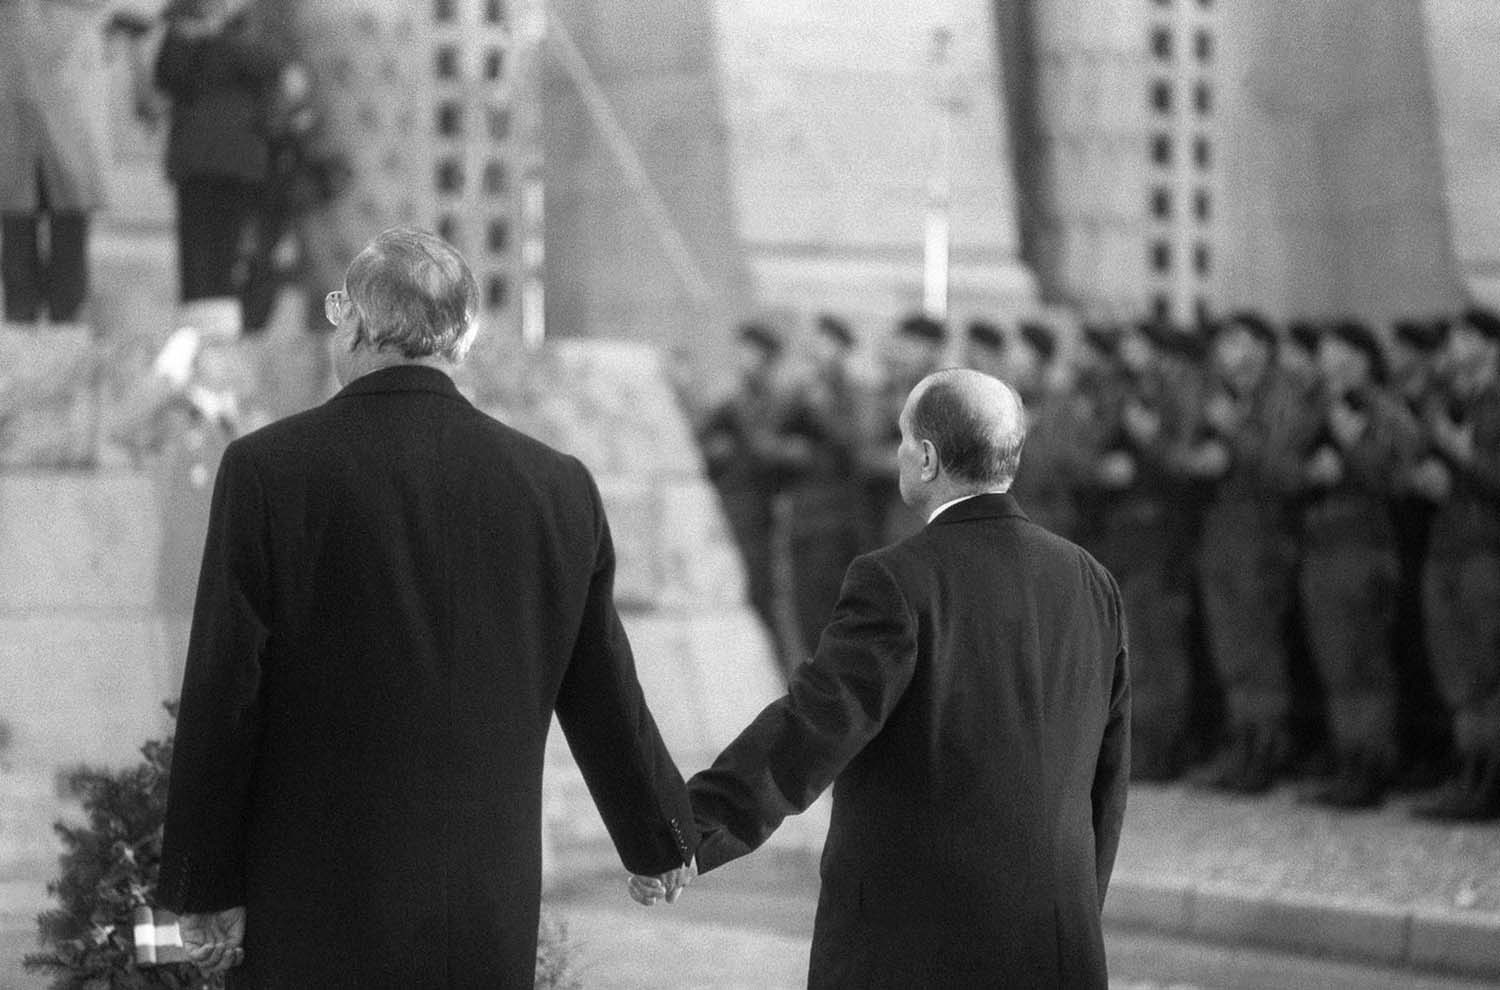 As the national anthems of both countries played, Mitterand and Kohl joined hands – a gesture of friendship symbolizing the lessons learned from a frightful past.